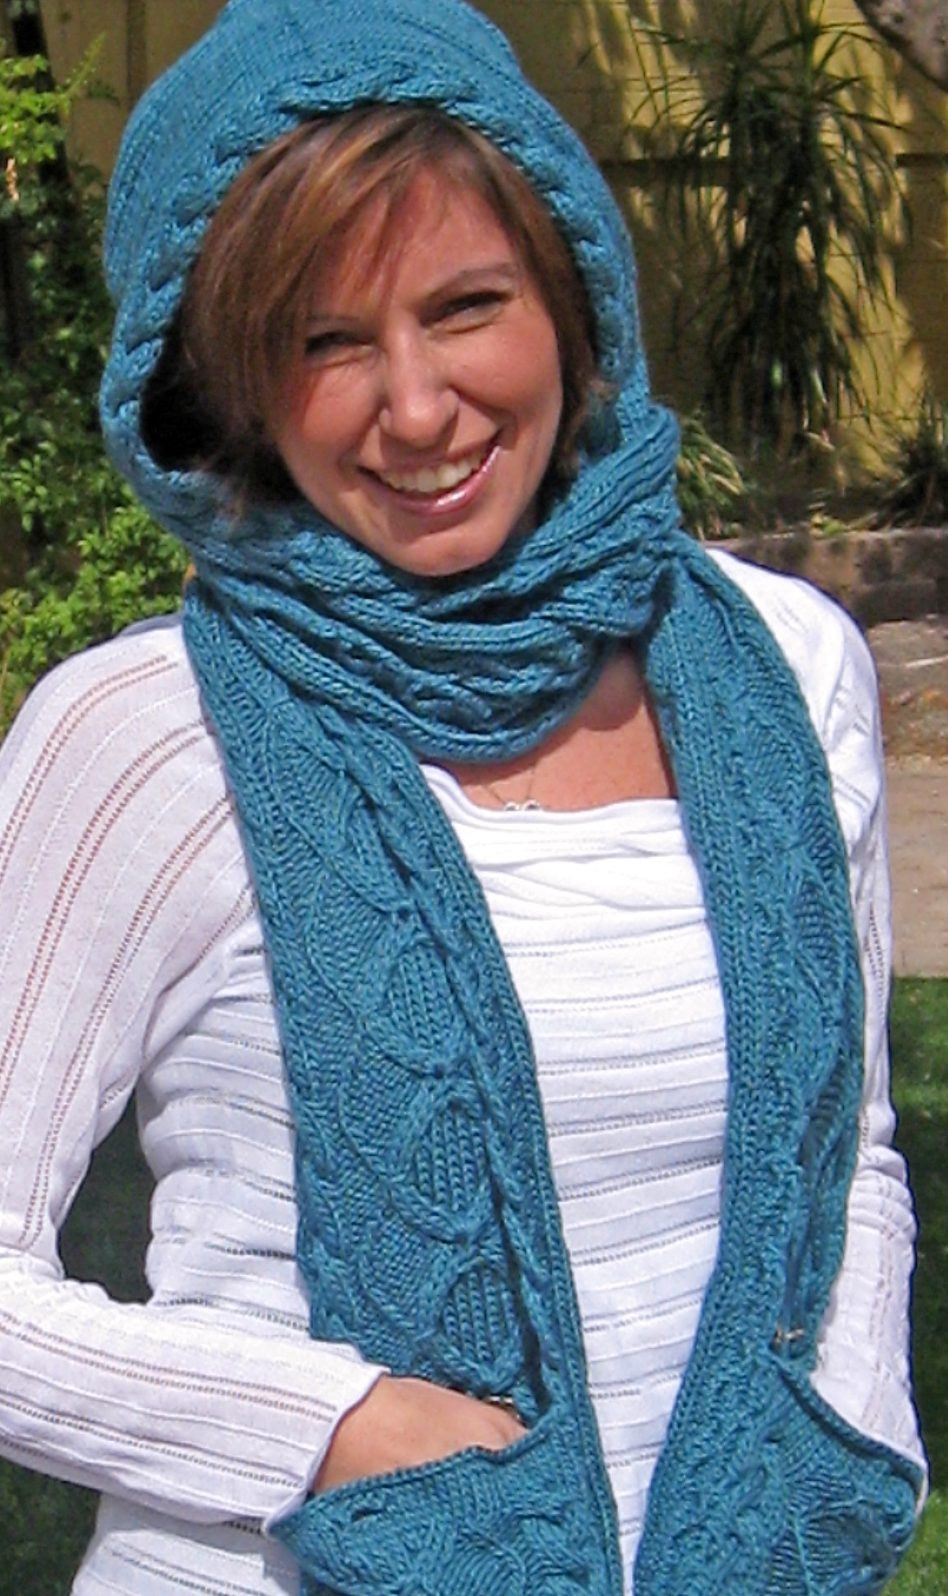 Awesome Hood Knitting Patterns Hooded Scarf Pattern Of Brilliant 43 Pics Hooded Scarf Pattern